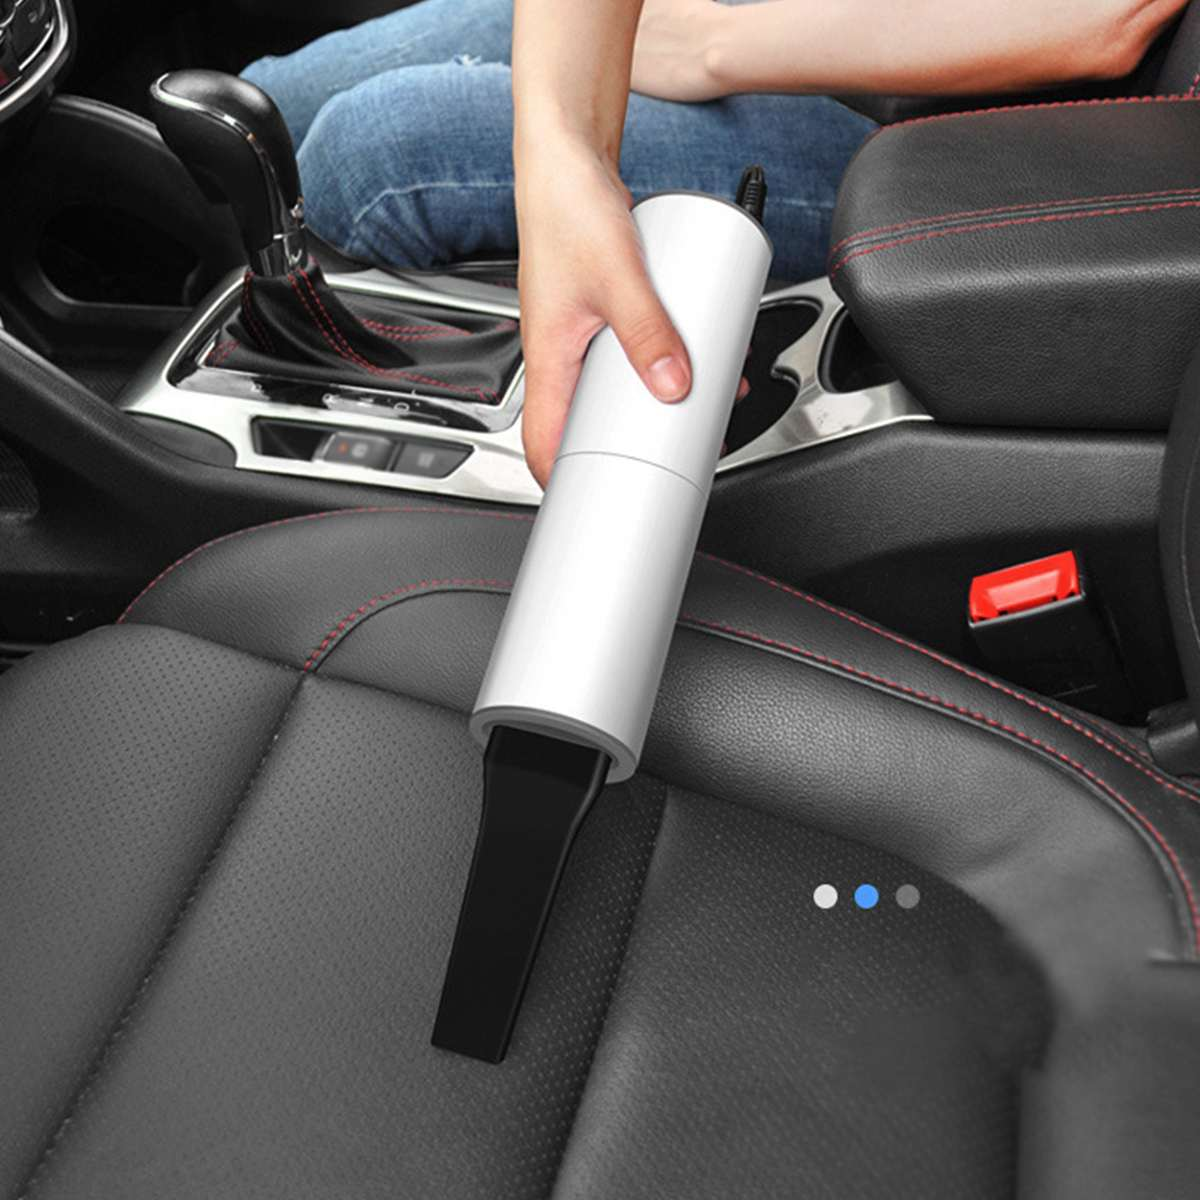 Handheld Mini Portable Vacuum Cleaner For Car, Home And Tent Cleaning